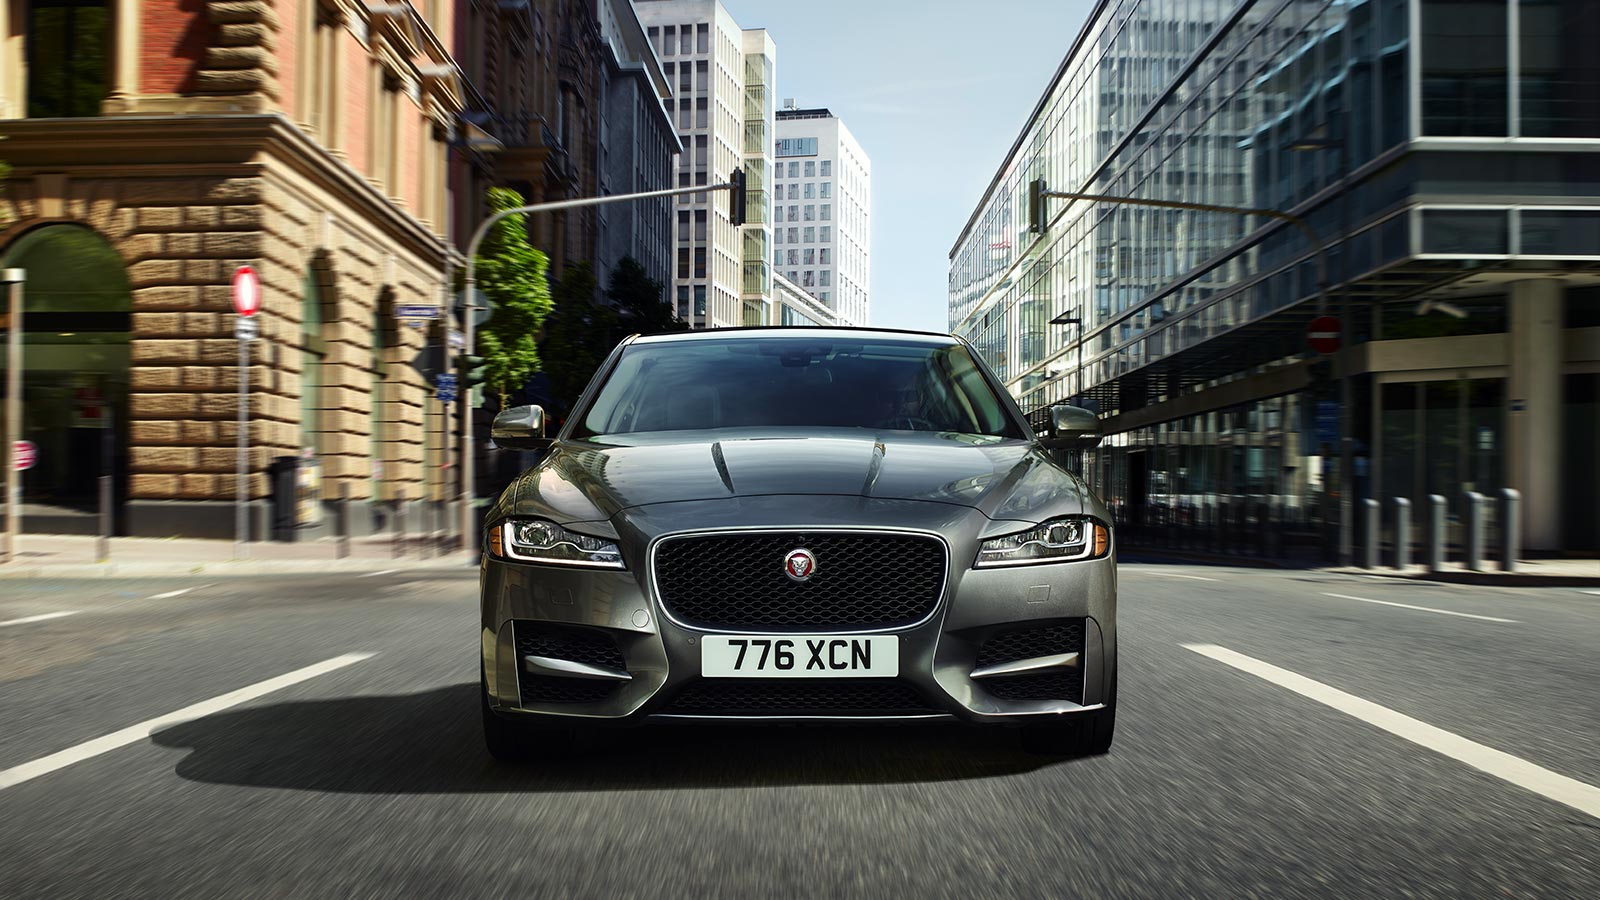 Front view of Jaguar XF driving on-road.